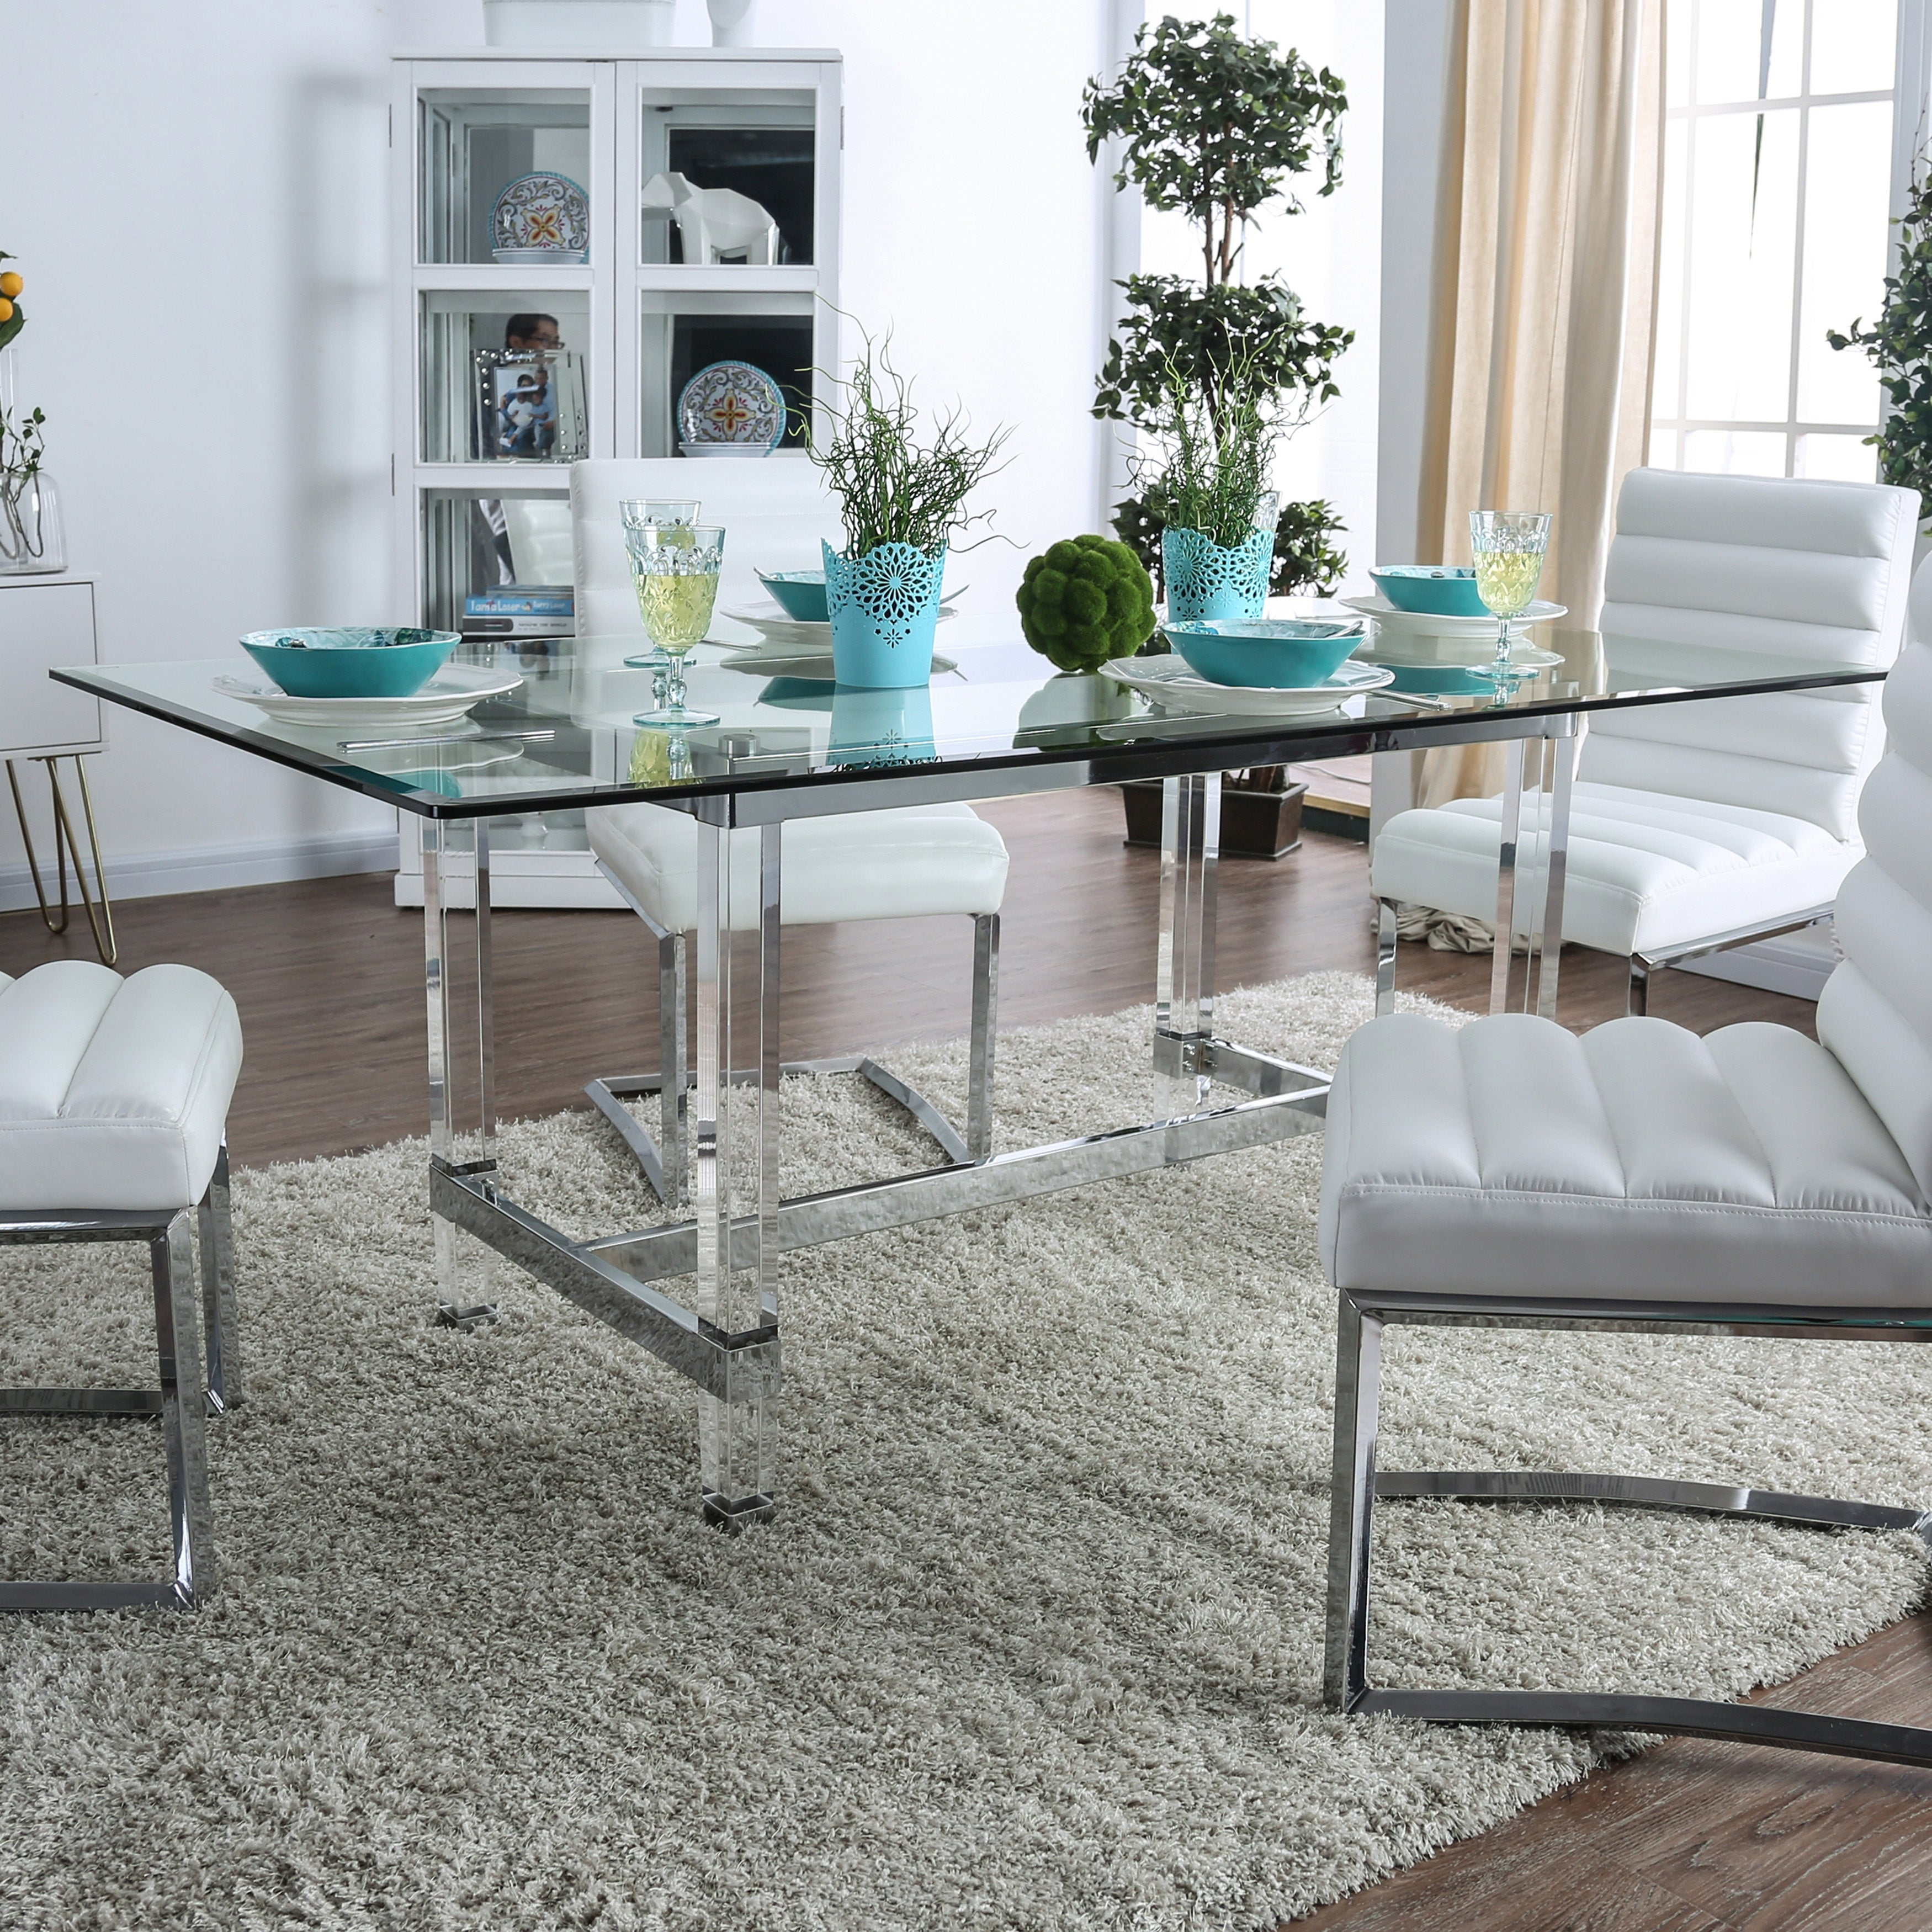 Silver Orchid Falconetti Acrylic And Glass Dining Table Overstock 23570115